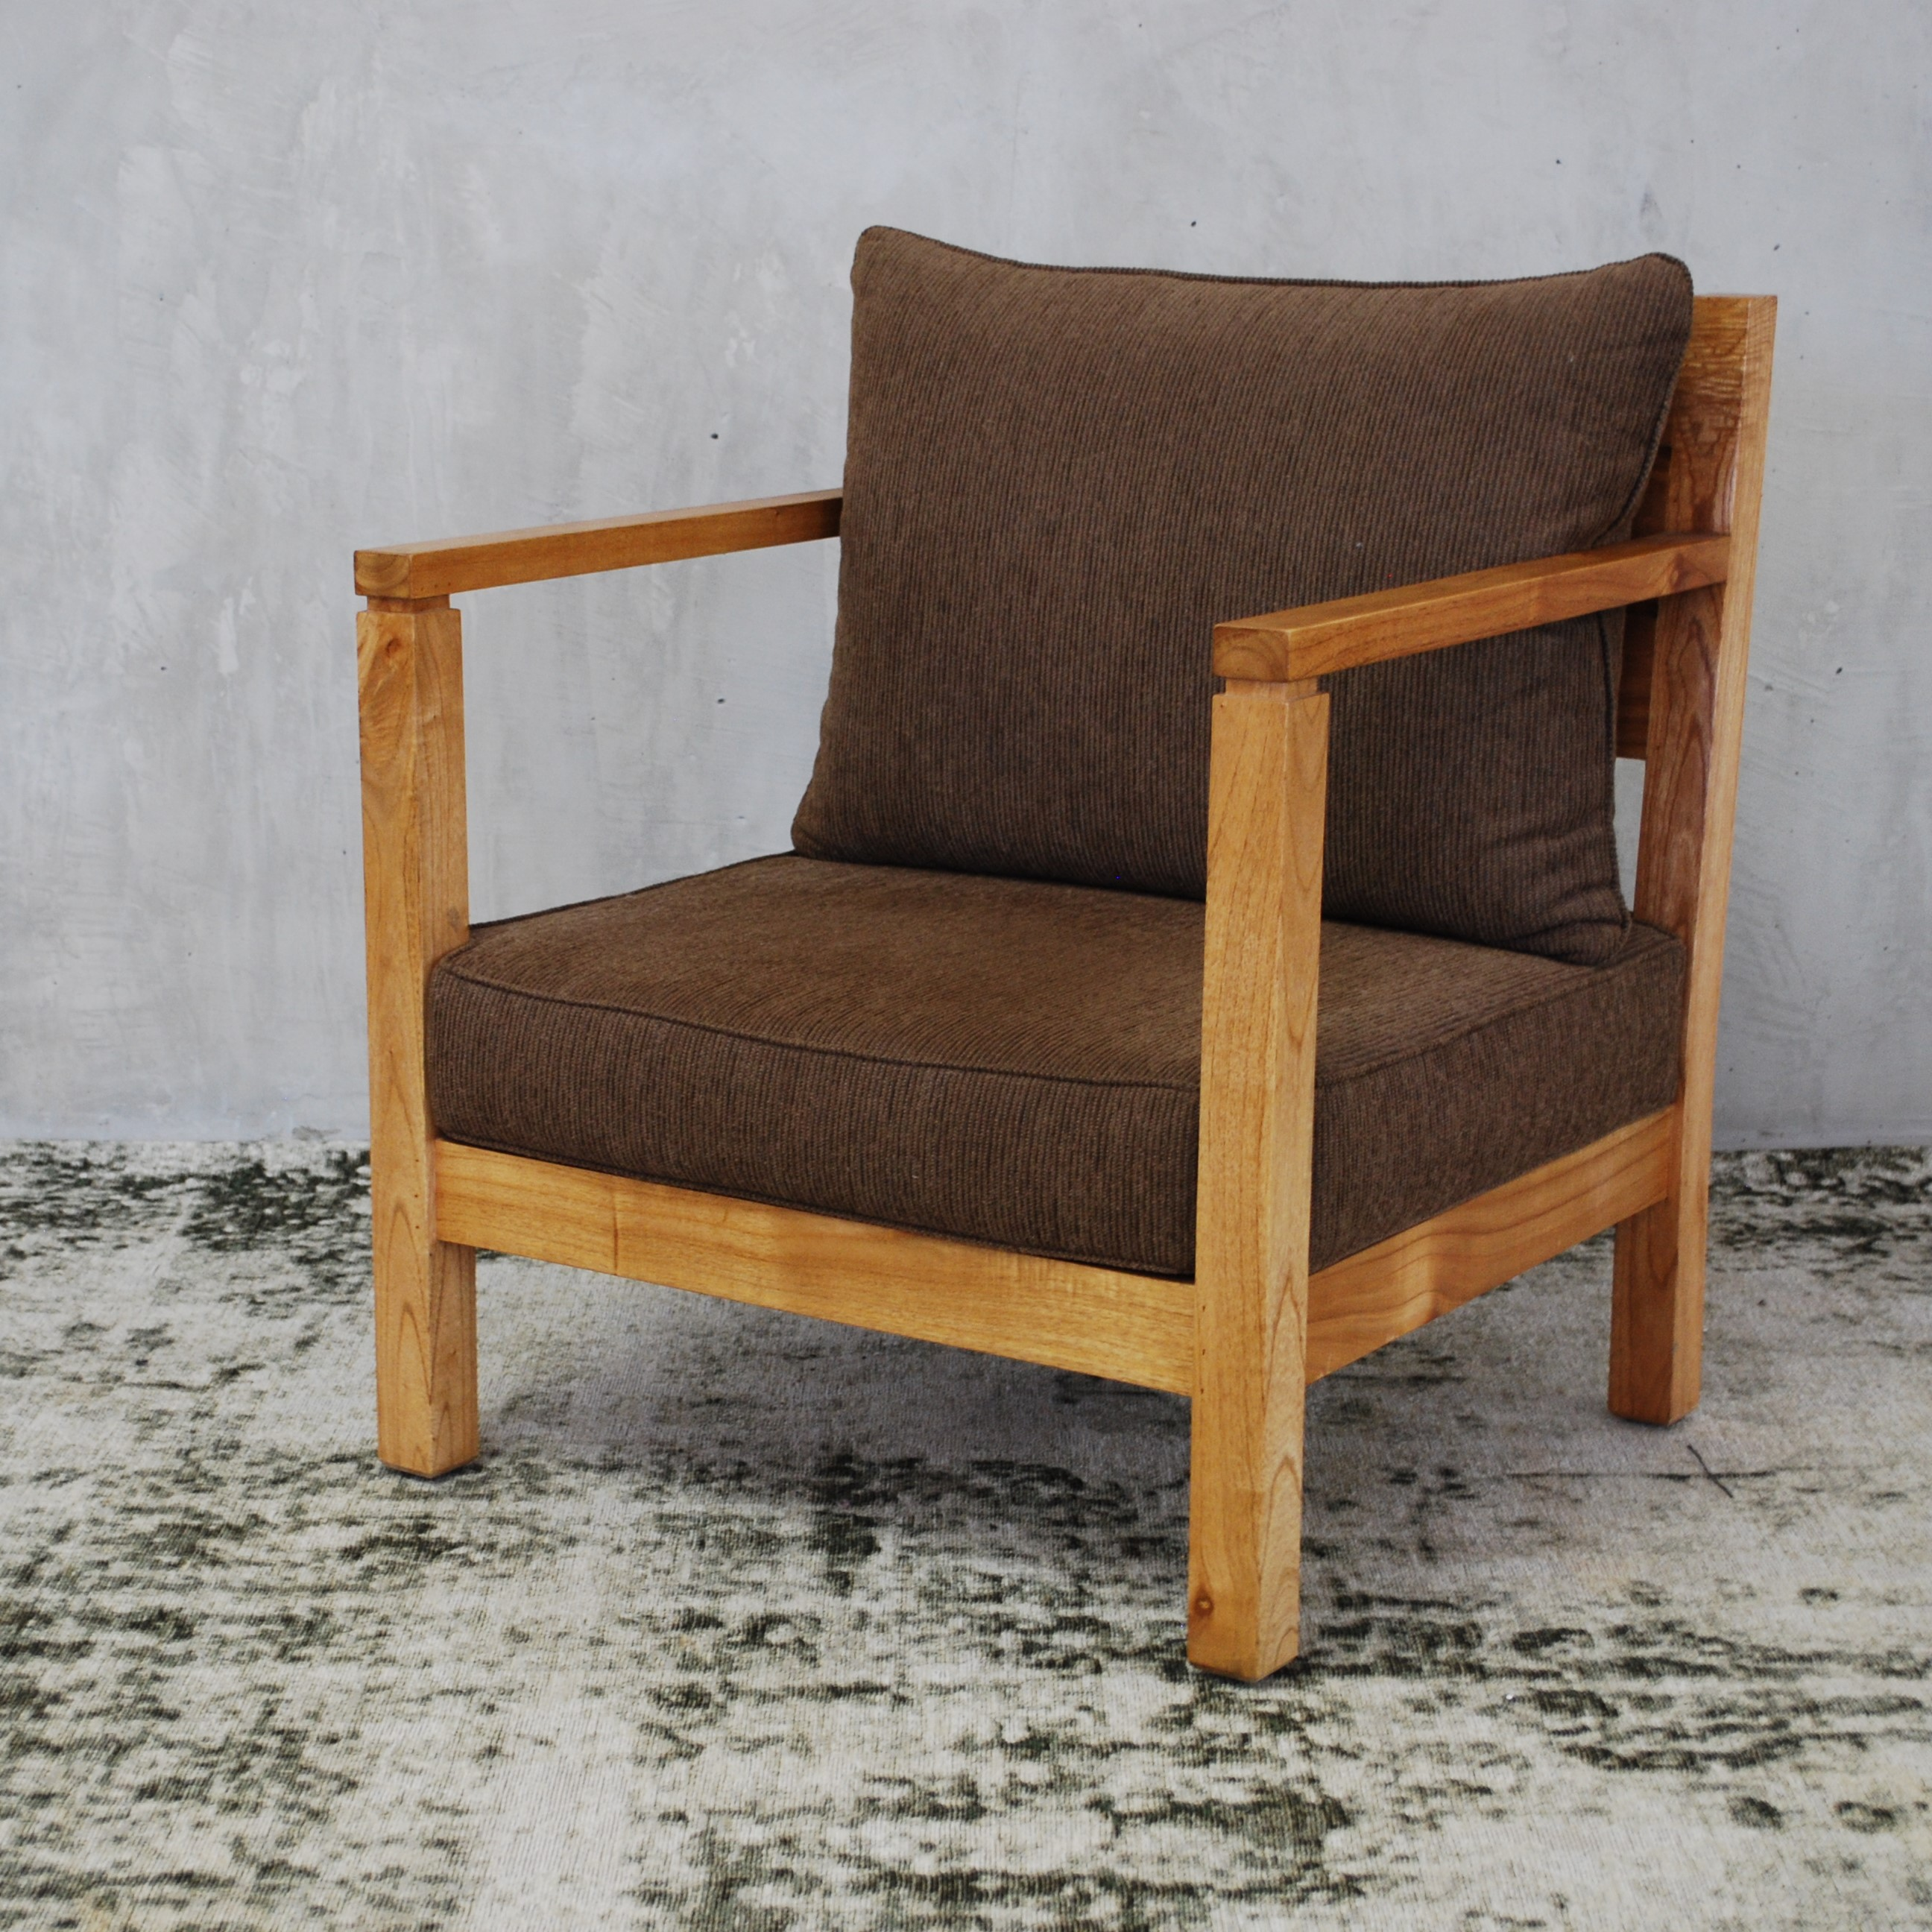 Melonwoods Indonesian Furniture | Quality Wooden FurnitureToppe ...